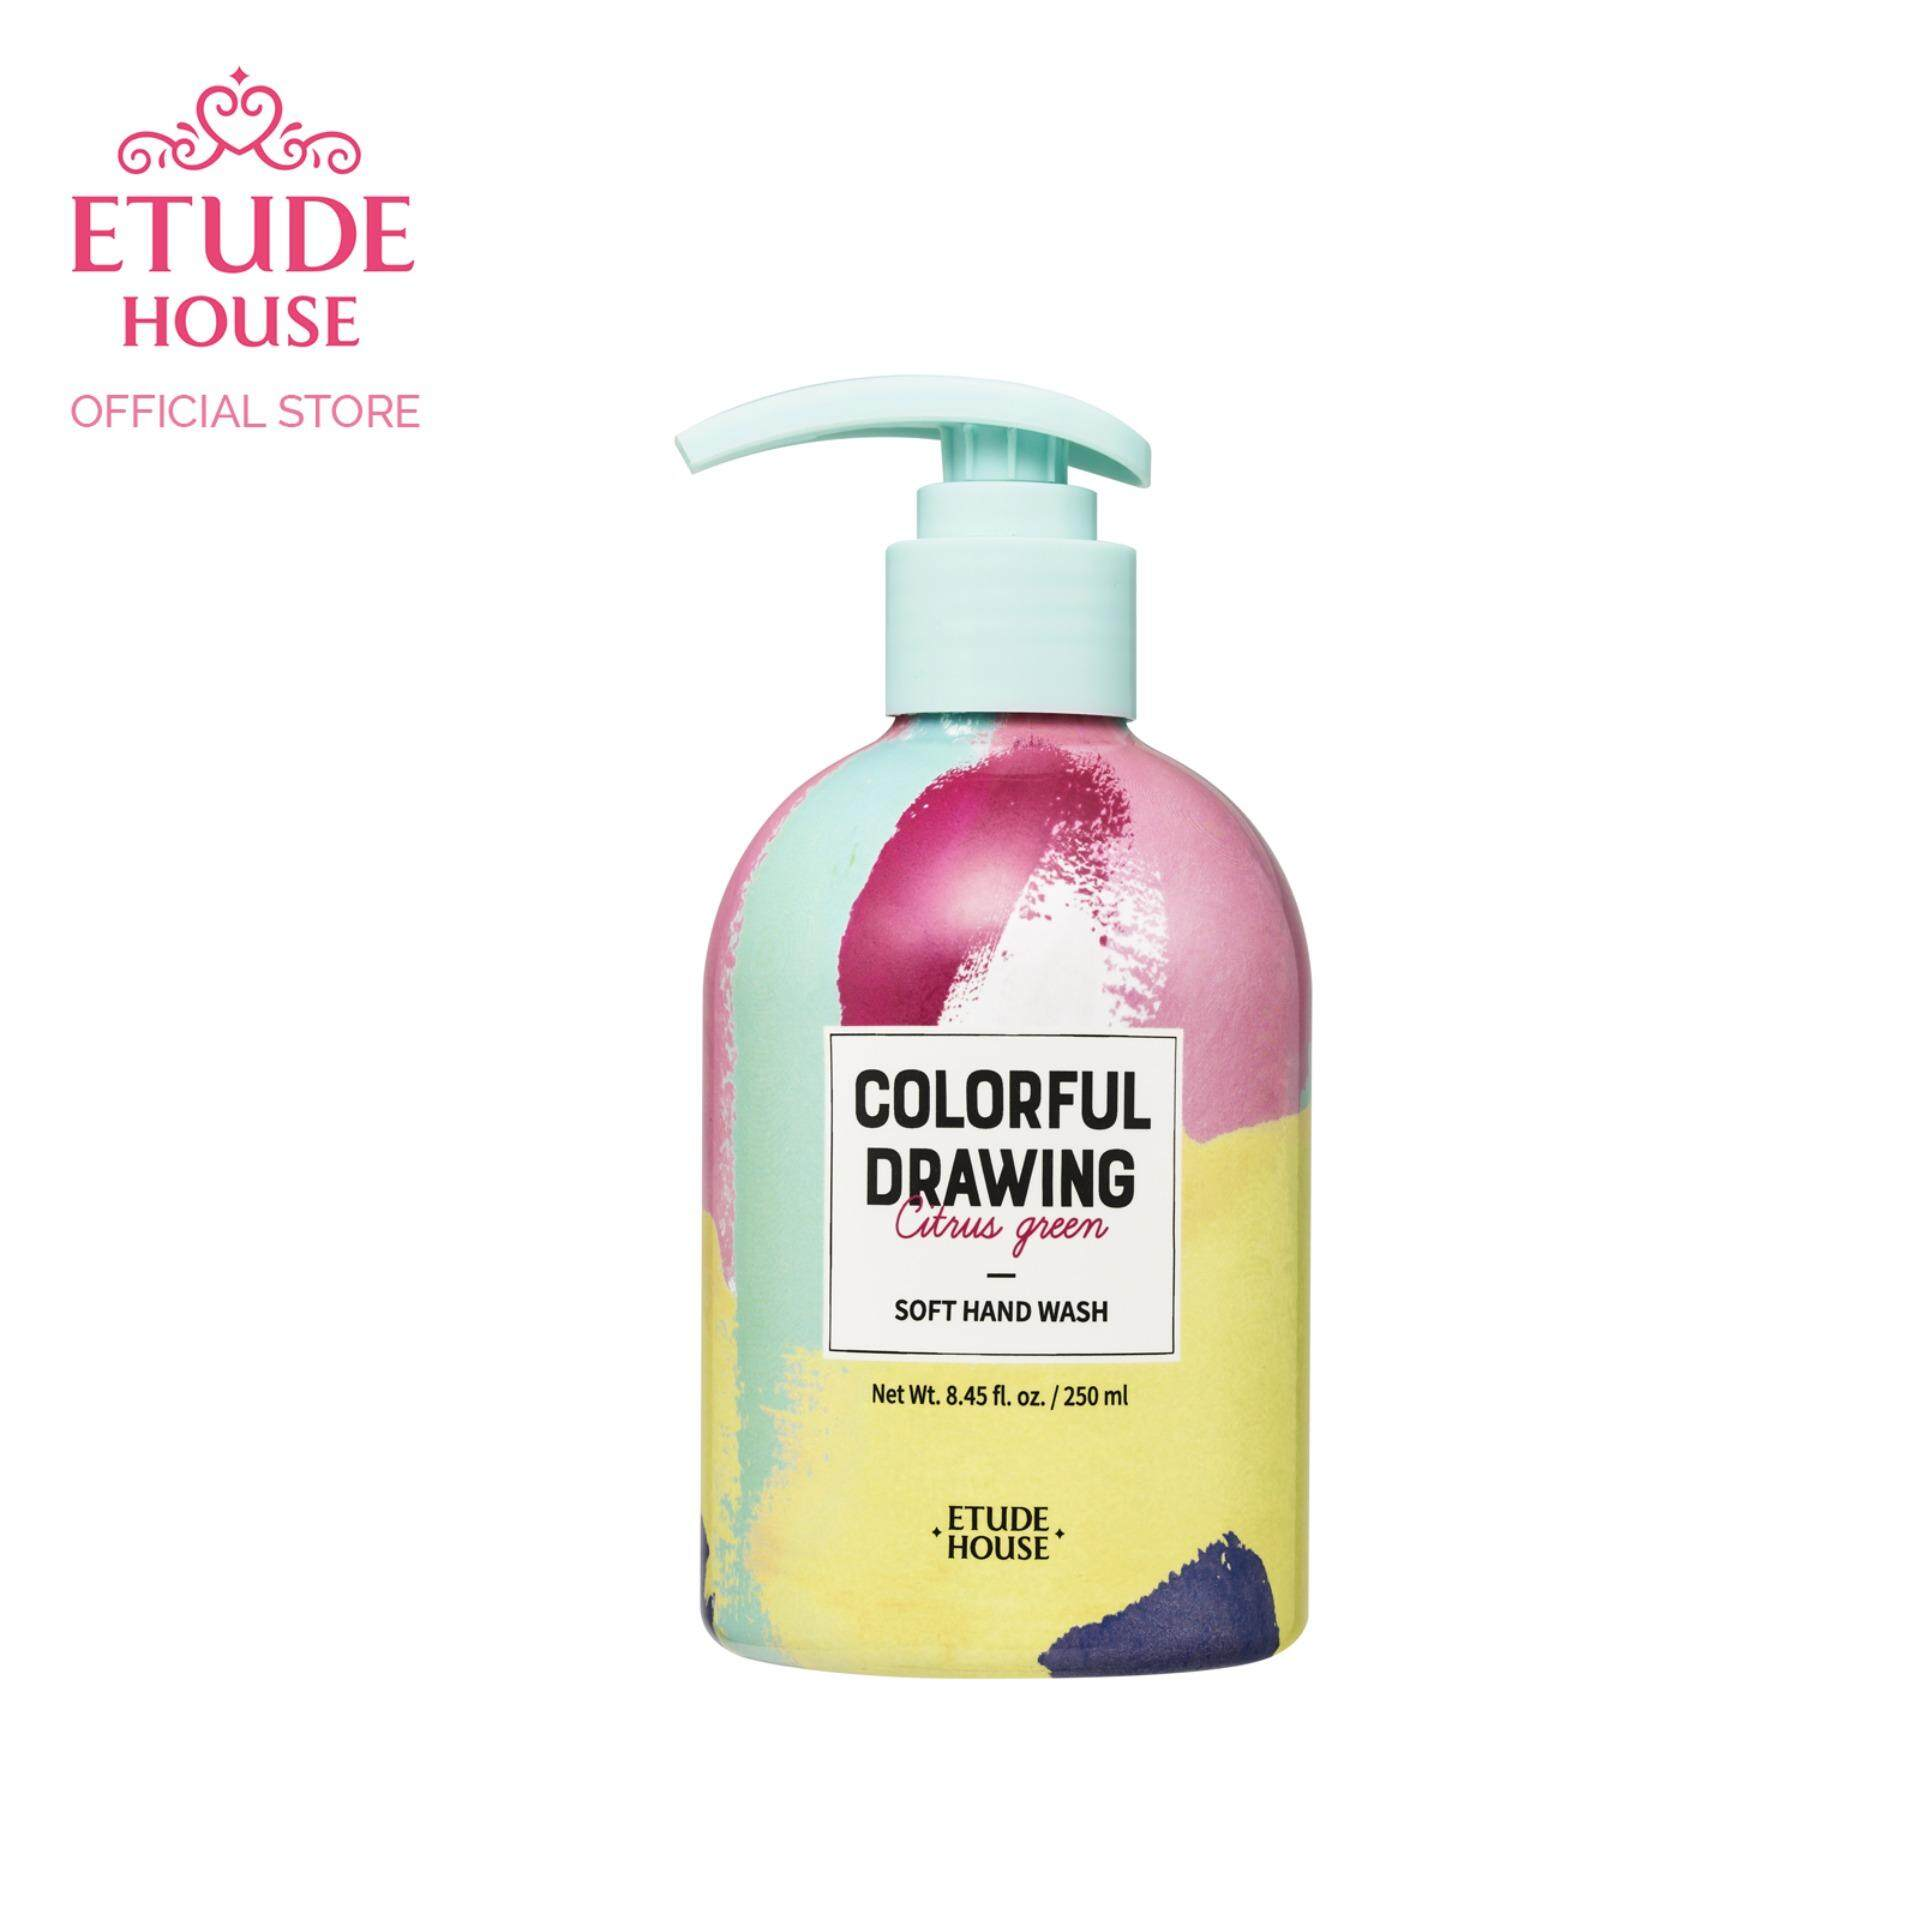 Fitur Etude House Wonder Pore Freshner 250ml Dan Harga Terbaru 500 Ml Colorful Drawing Soft Handwash